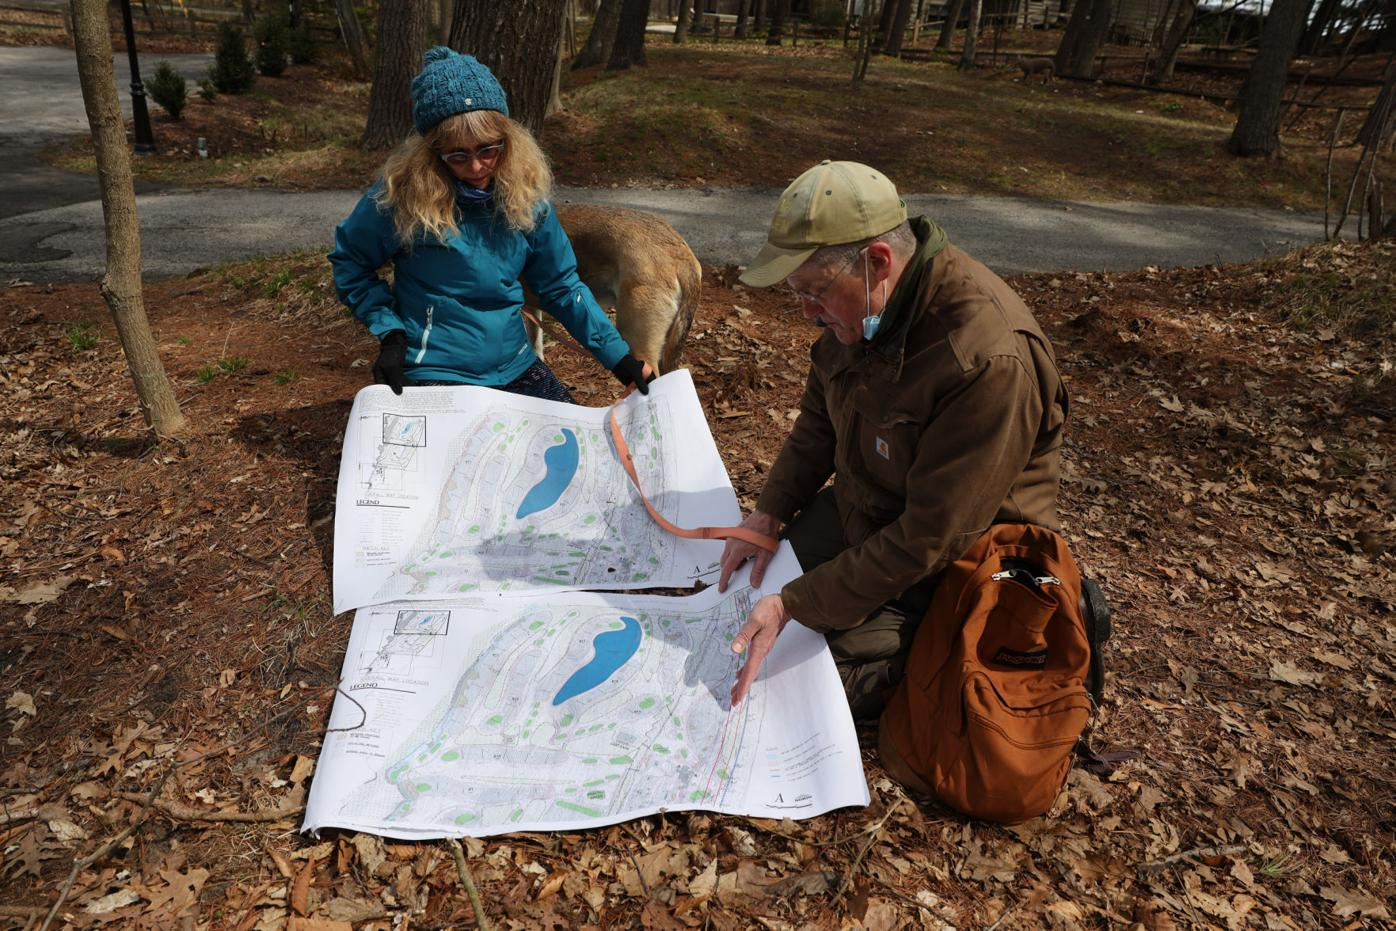 Human remains found on proposed golf course site